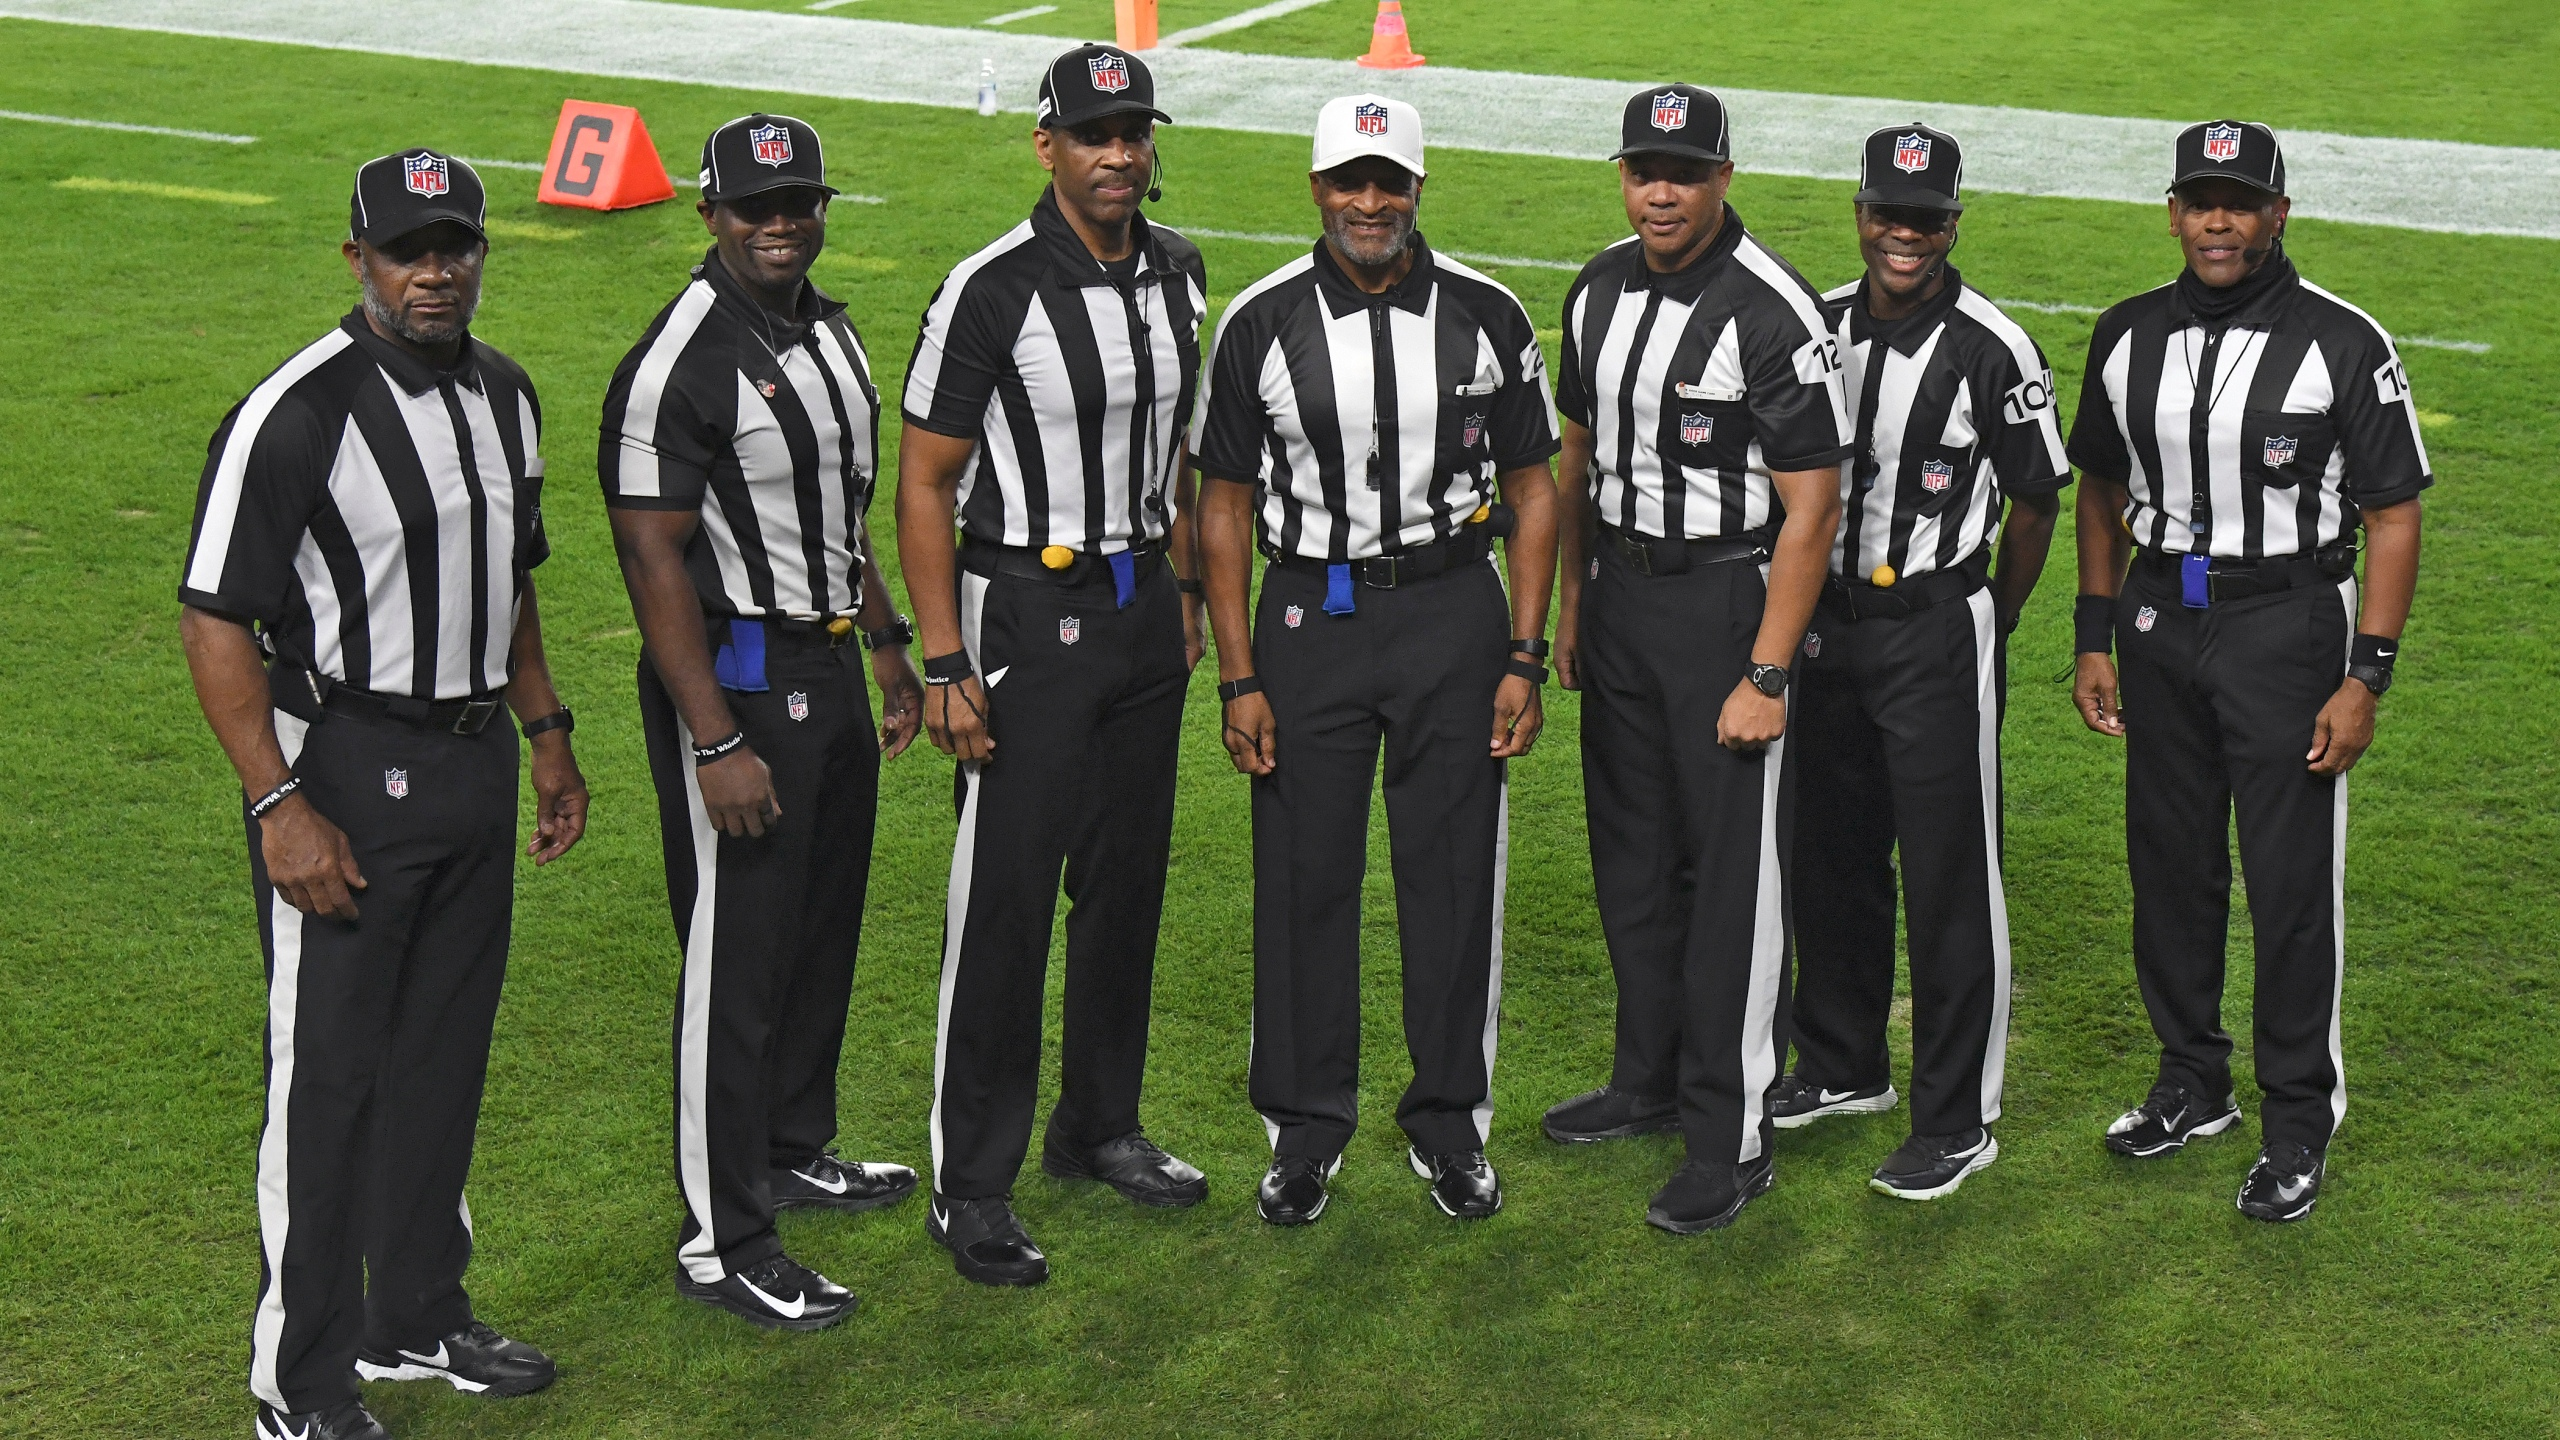 NFL officials, from left, umpire Barry Anderson, side judge Anthony Jeffries, down judge Julian Mapp, referee Jerome Boger, back judge Greg Steed, field judge Dale Shaw (104), line judge Carl Johnson (101) pose for a photo before an NFL football game between the Tampa Bay Buccaneers and the Los Angeles Rams on Nov. 23, 2020, in Tampa, Fla. The game is the first in NFL history to feature an all African-American officiating crew. (AP Photo/Jason Behnken)